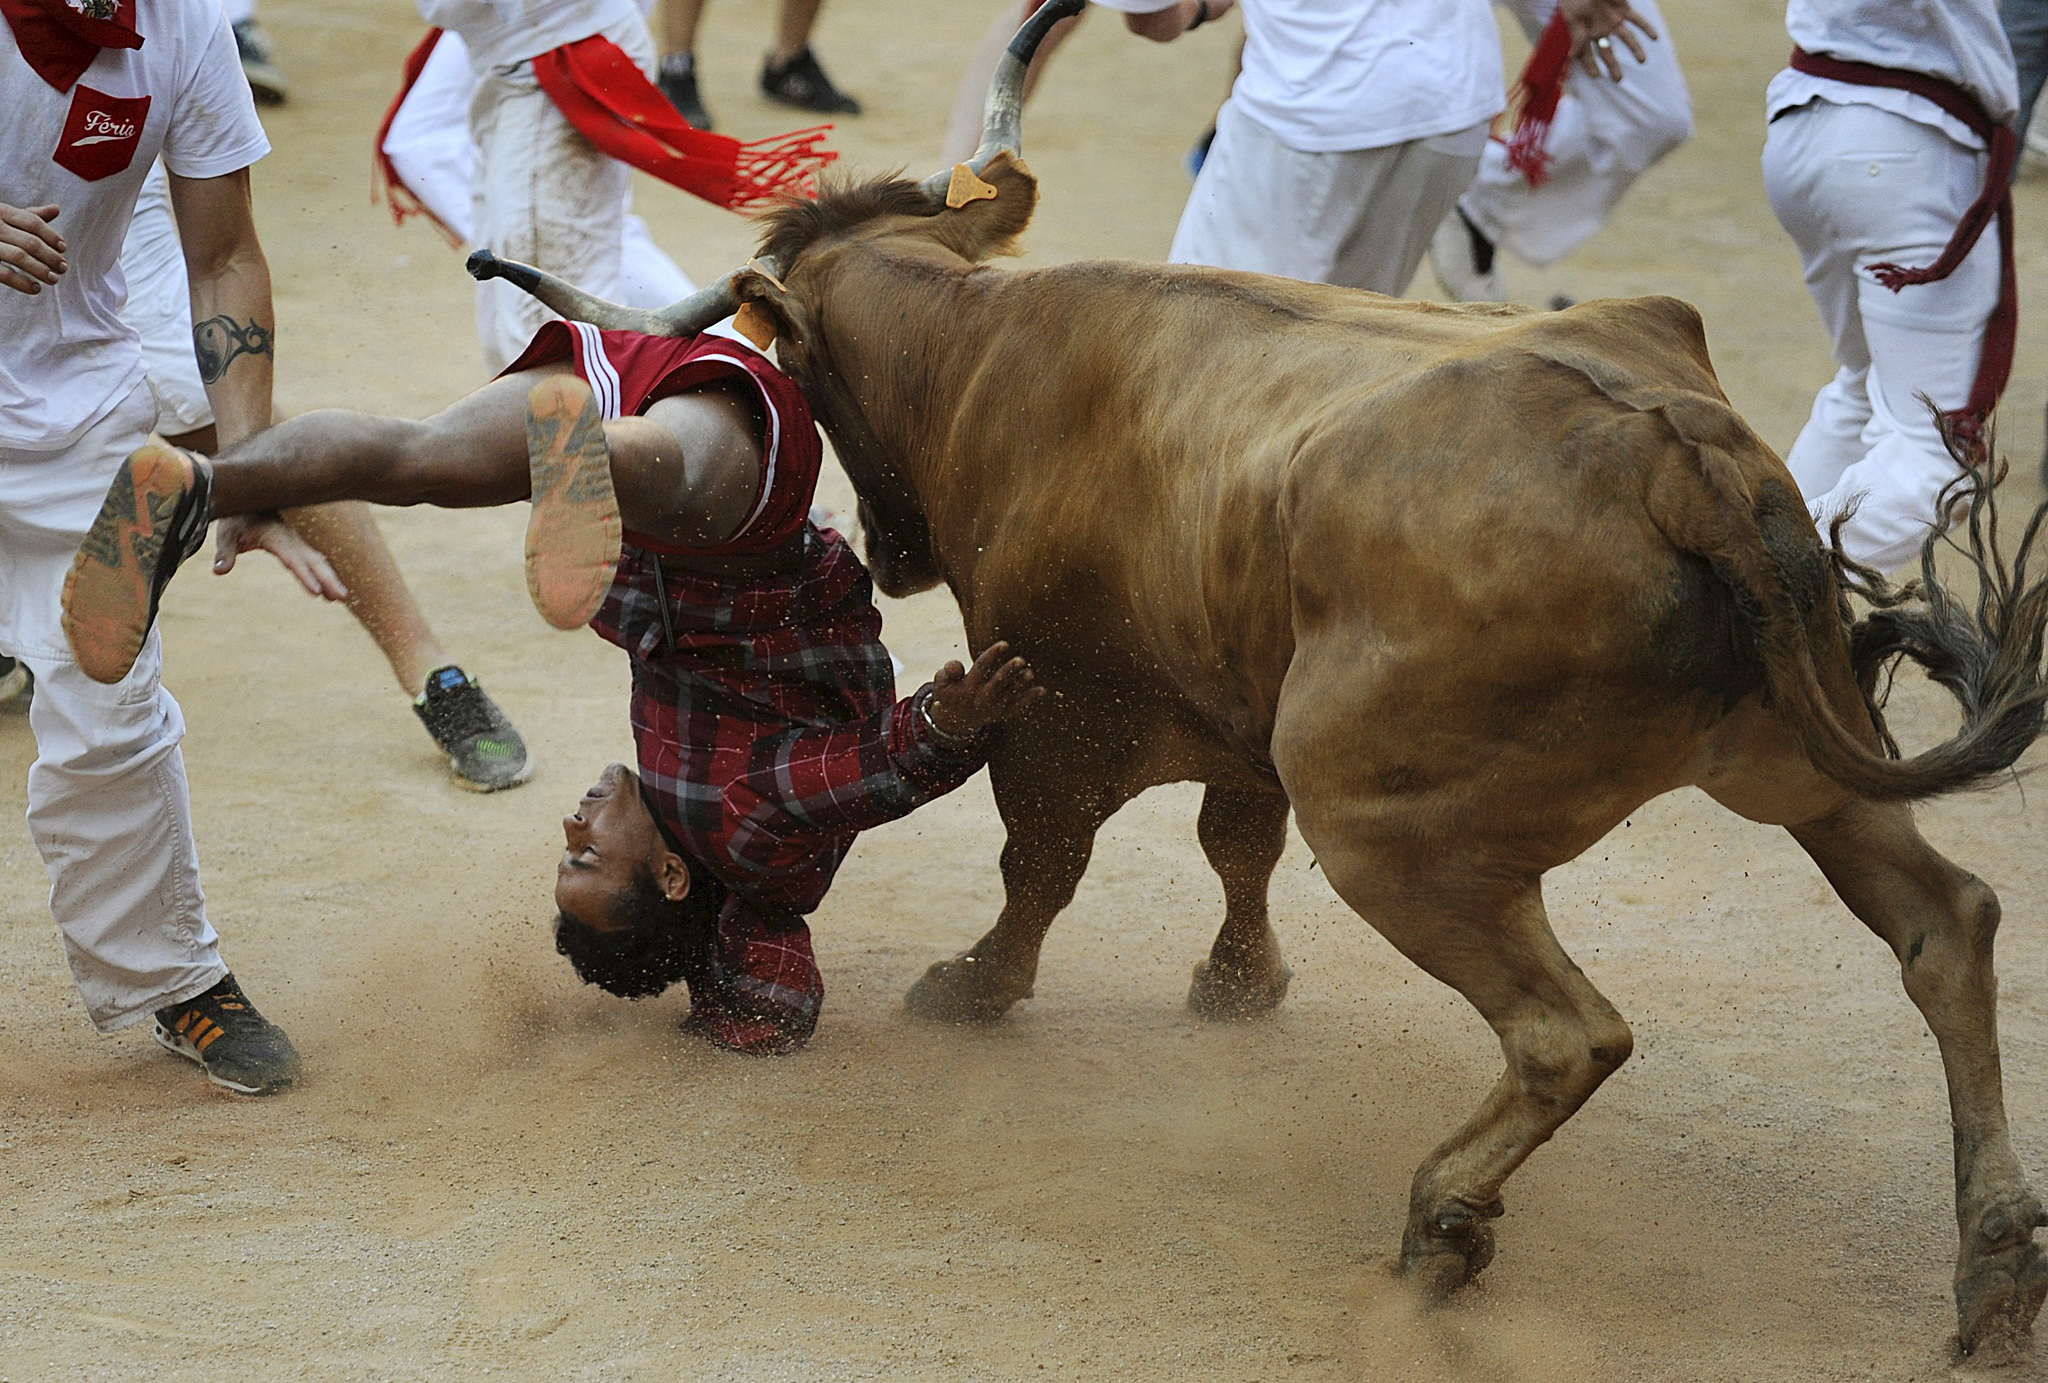 A wild cow tosses a reveller at the bullring following the seventh running of the bulls of the San Fermin festival in Pamplona...A wild cow tosses a reveller at the bullring following the seventh running of the bulls of the San Fermin festival in Pamplona, northern Spain, July 13, 2015. Two runners were gored in the run that lasted 2 minutes and 12 seconds, according to local media. REUTERS/Eloy Alonso